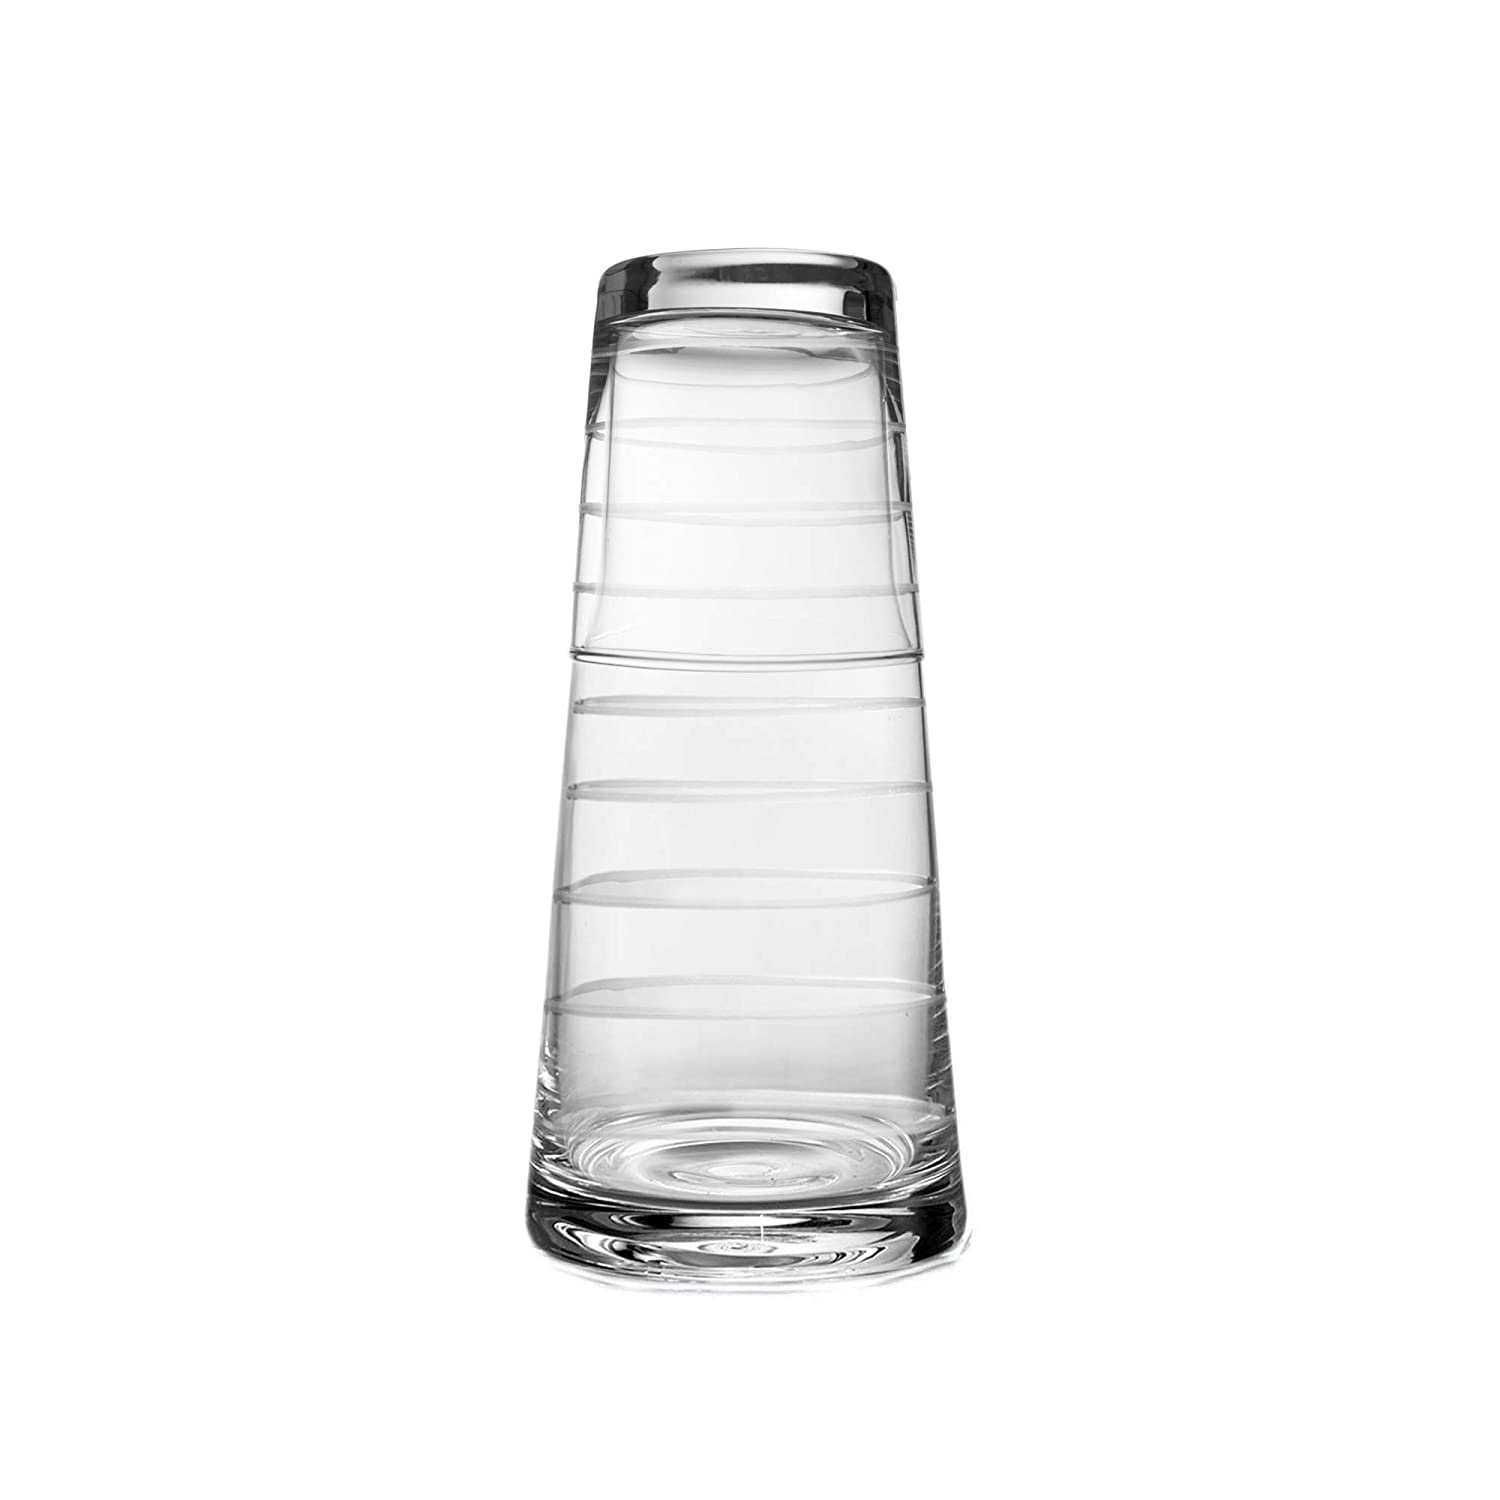 Office-Gift 4.2 x 9.4 Clear Elegant Pitcher and Matching Drinking Glass Acts As Lid for Guest Room Fifth Avenue Crystal 229814-R2GB Medallion Bedside Water Carafe and Tumbler